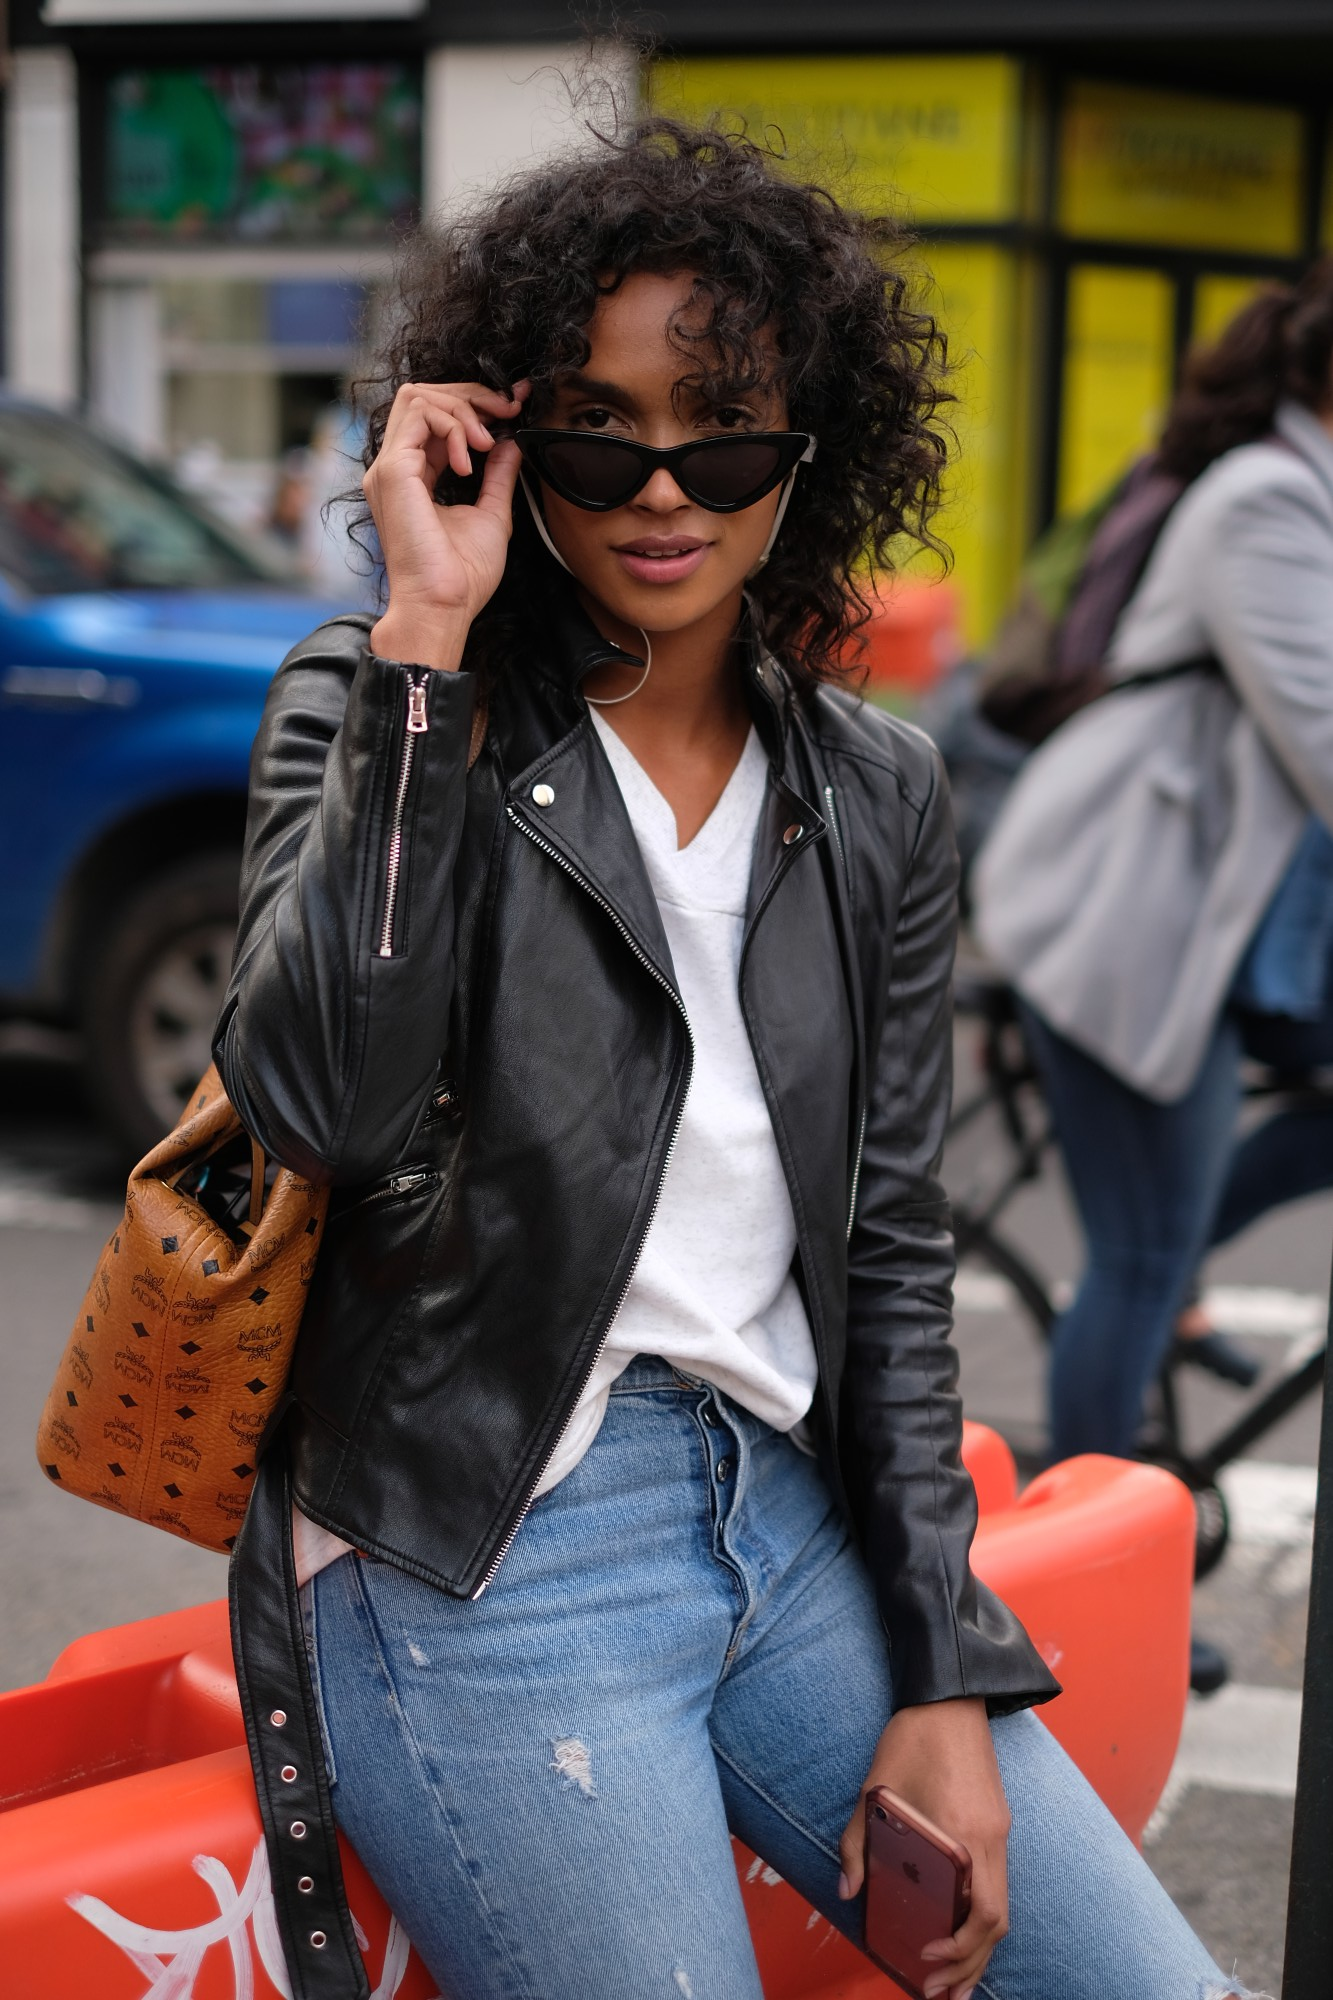 nyc model in leather jacket